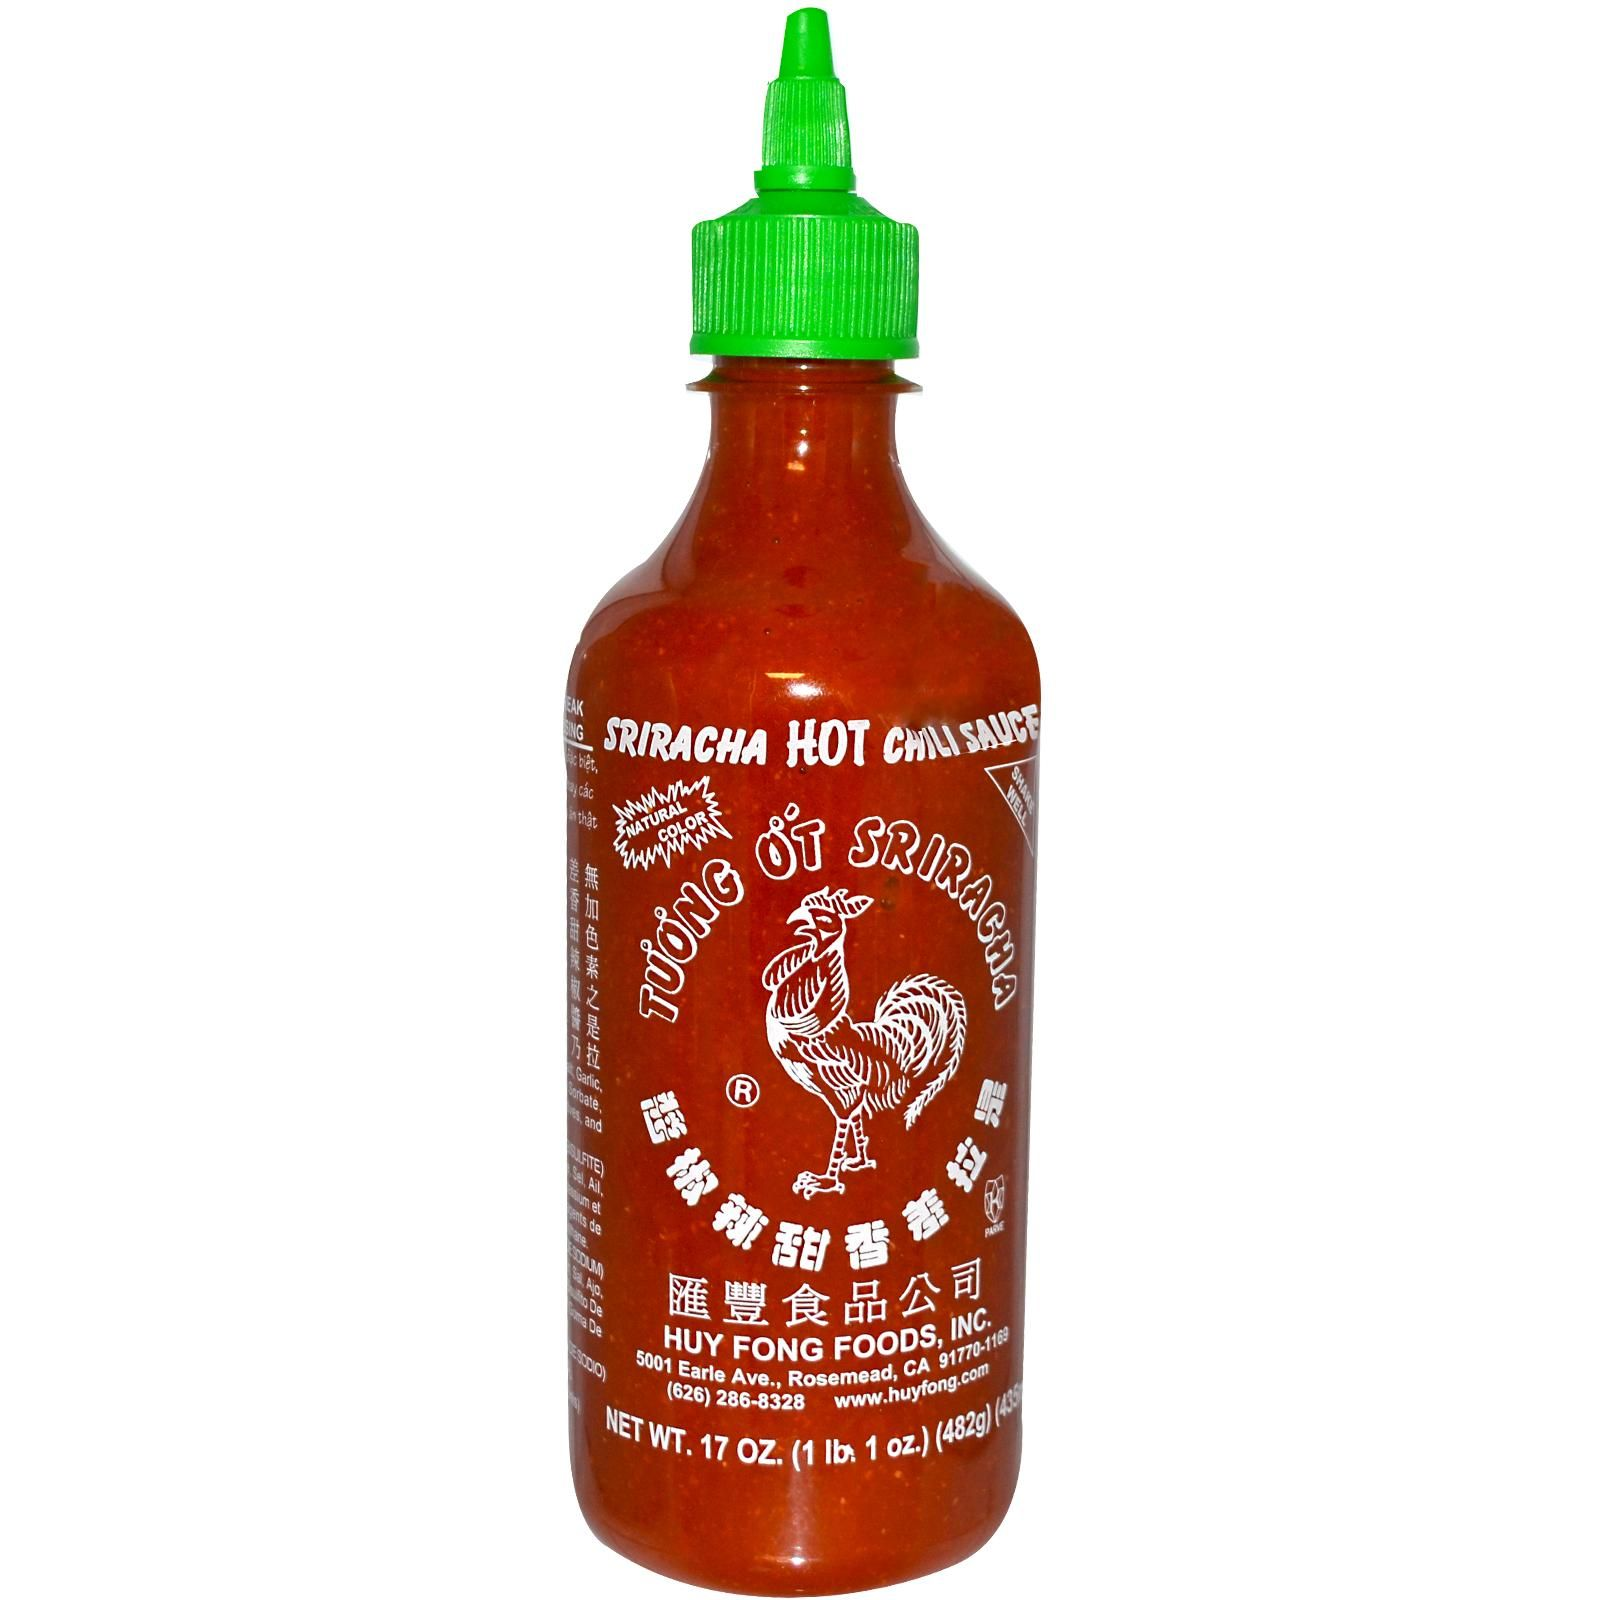 Huy Fong Foods Inc Sriracha Hot Chili Sauce 17 Oz 482 G Discontinued Item Hot Chili Sauce Sriracha Huy Fong Foods